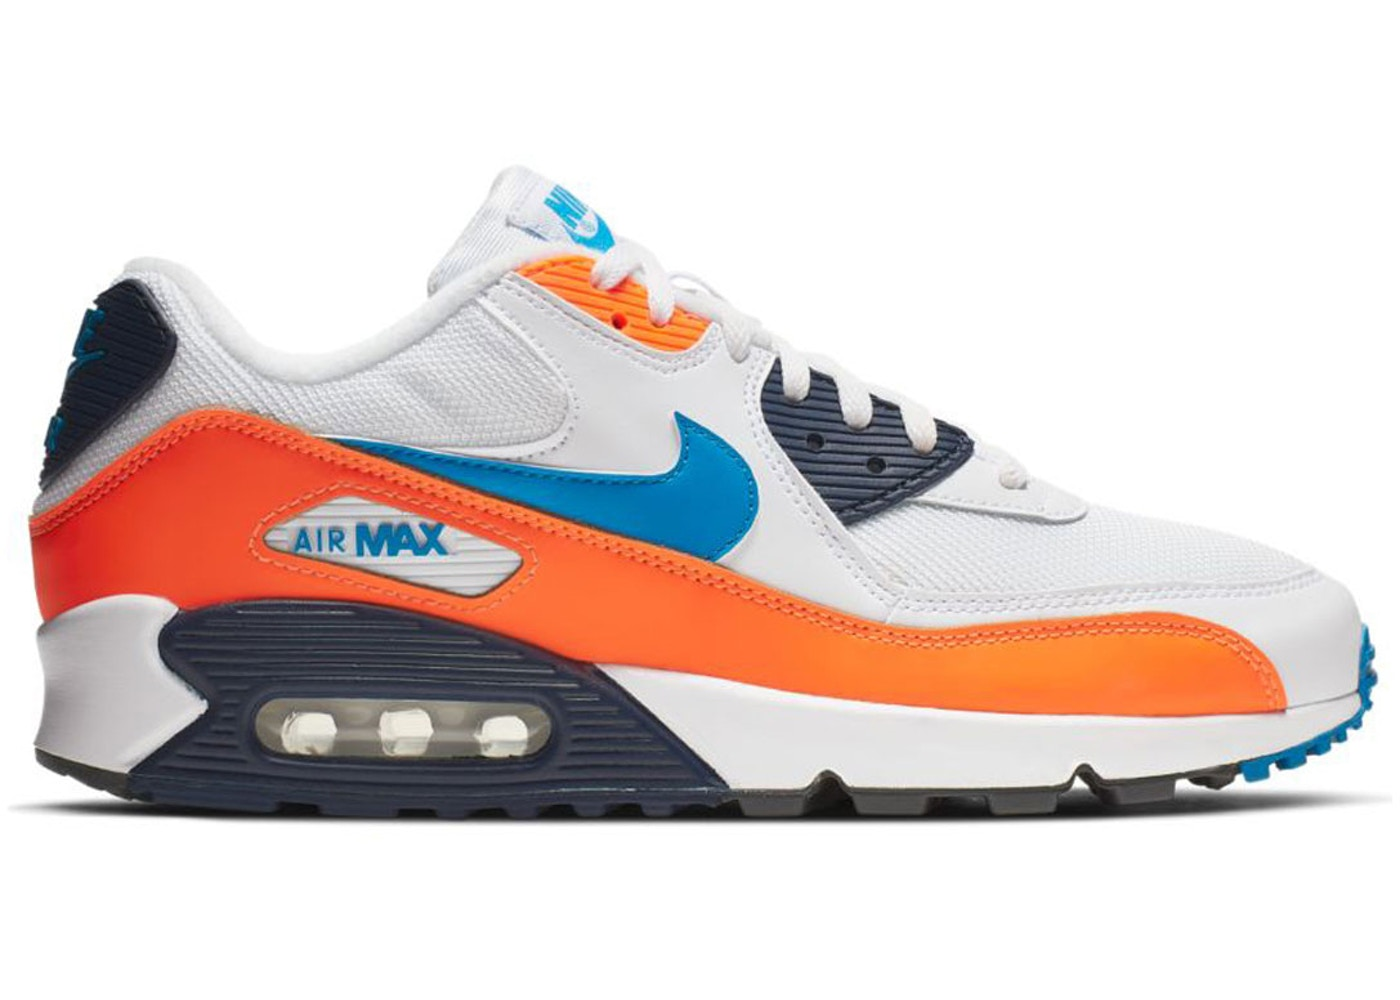 52fbec7f18 Sell. or Ask. Size: 9.5. View All Bids. Air Max 90 White Photo Blue Total  Orange